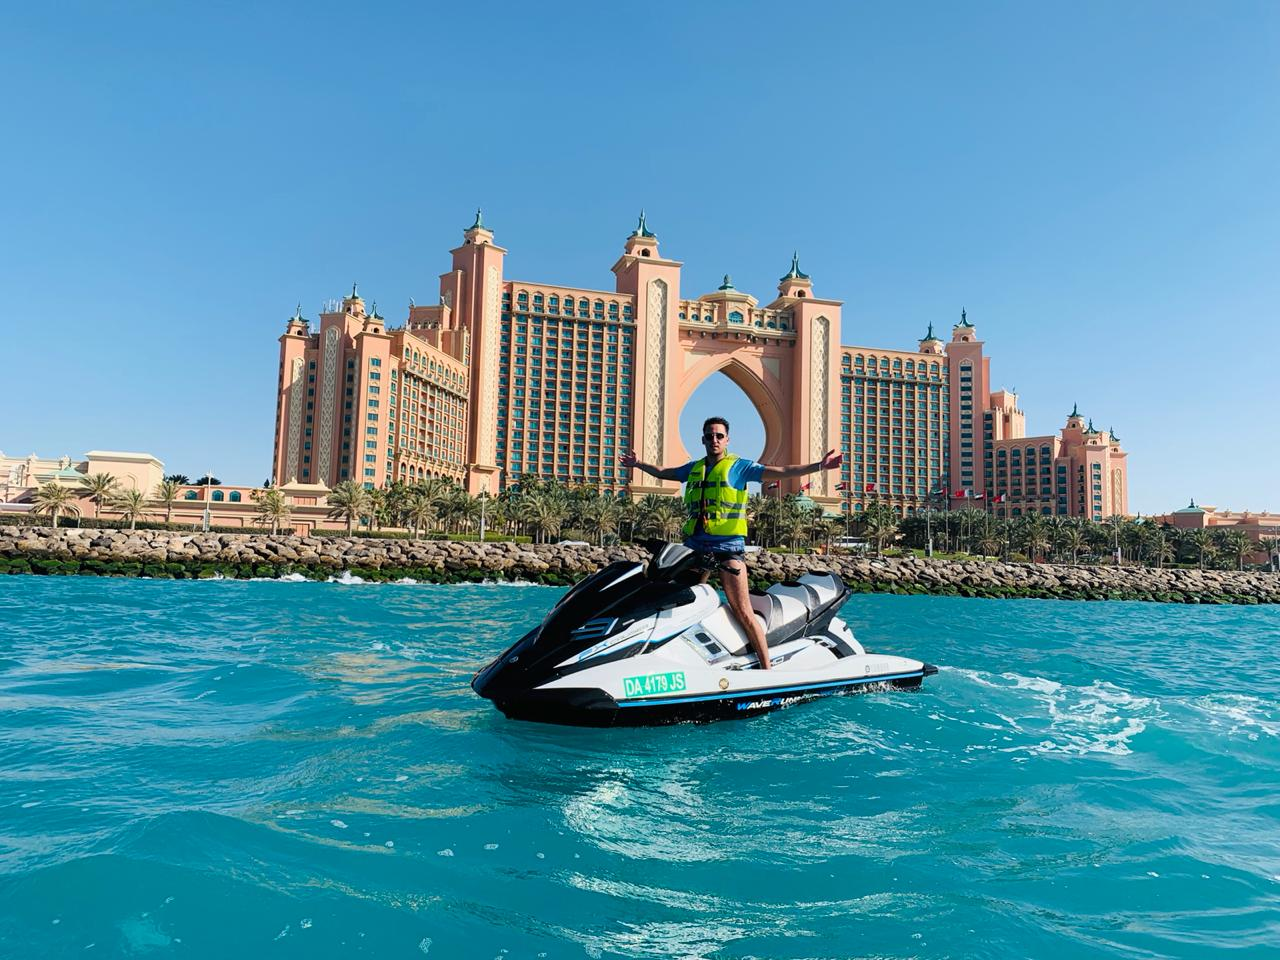 Client on jet ski in front of Atlantis